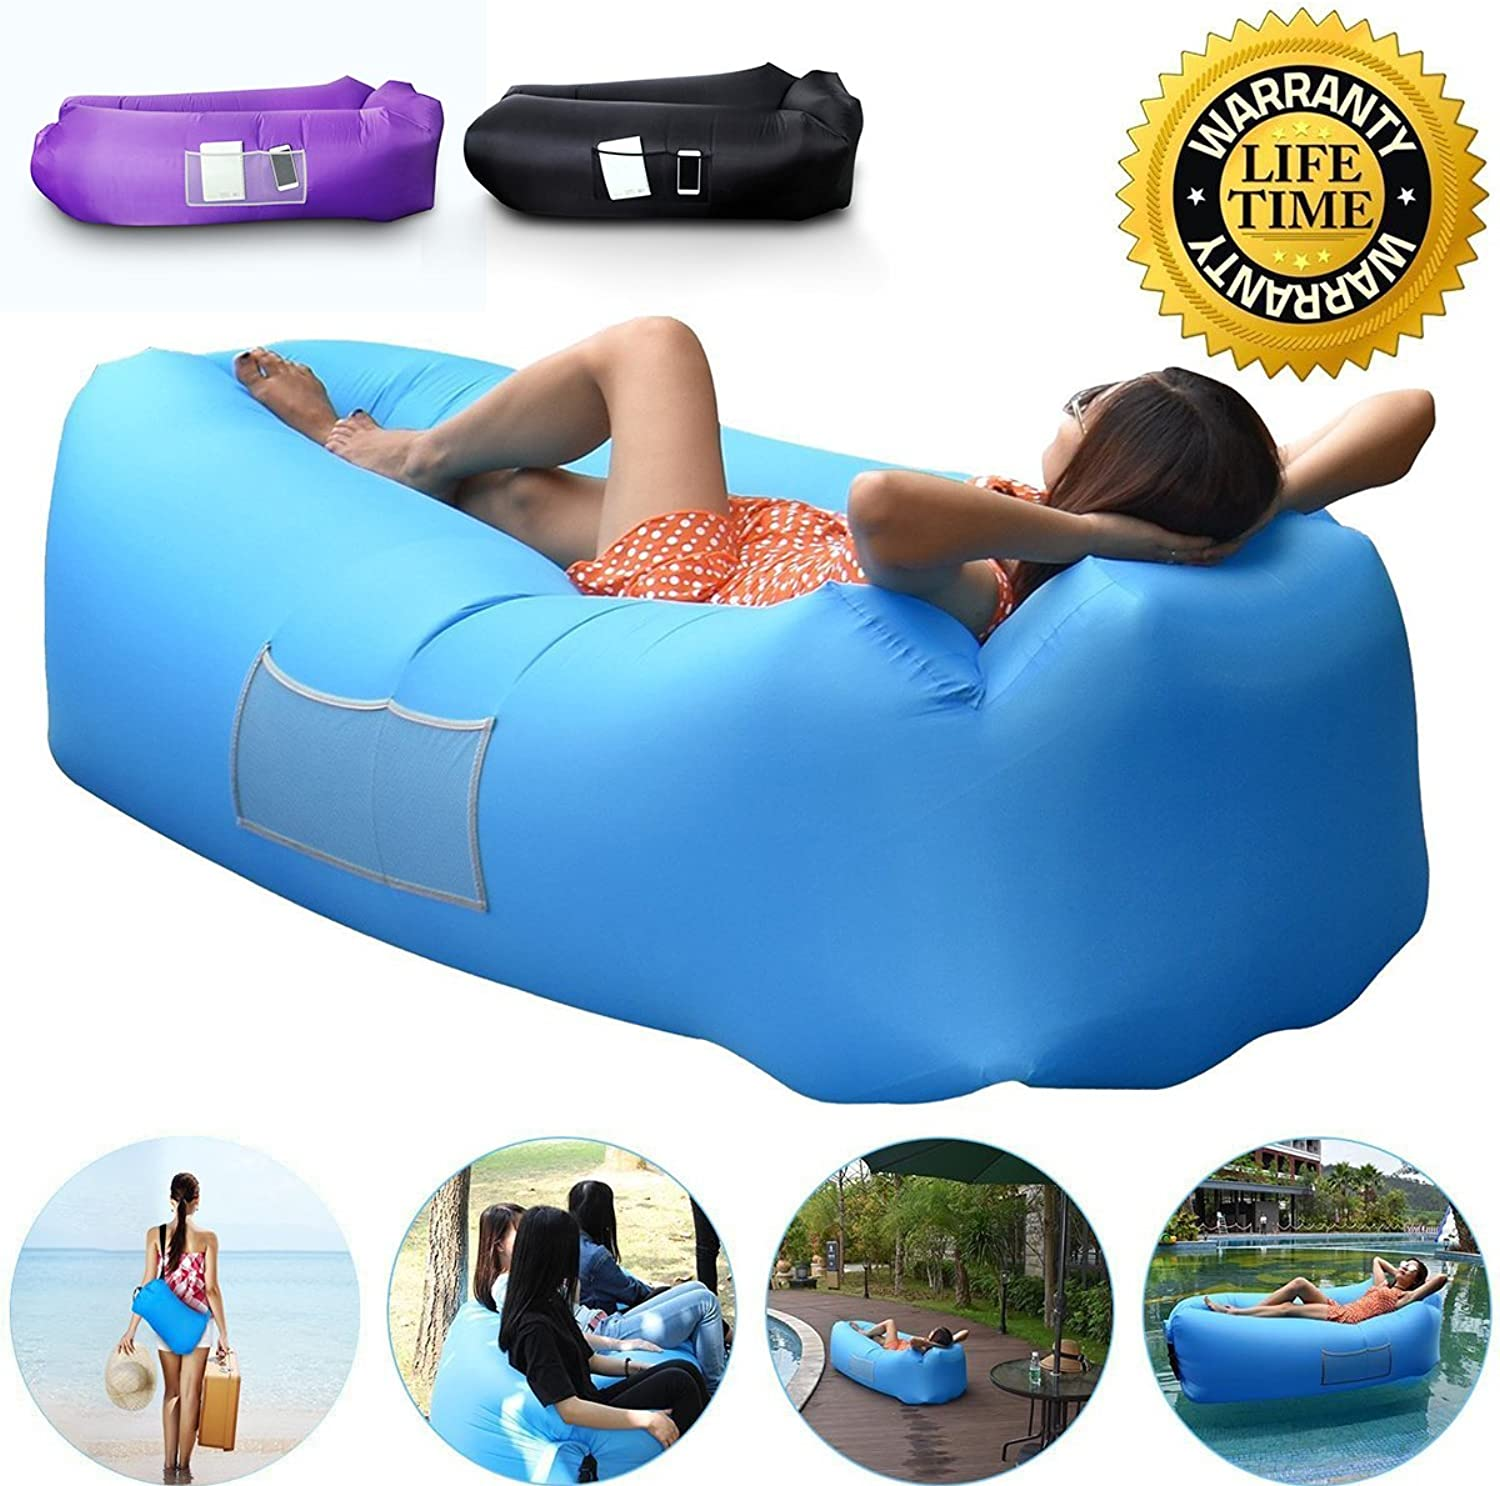 Outdoor Inflatable Lounger Couch Air Sofa Blow Up Lounge Chair with Carrying Bag for Travelling Camping Hiking Park Pool and Beach Parties